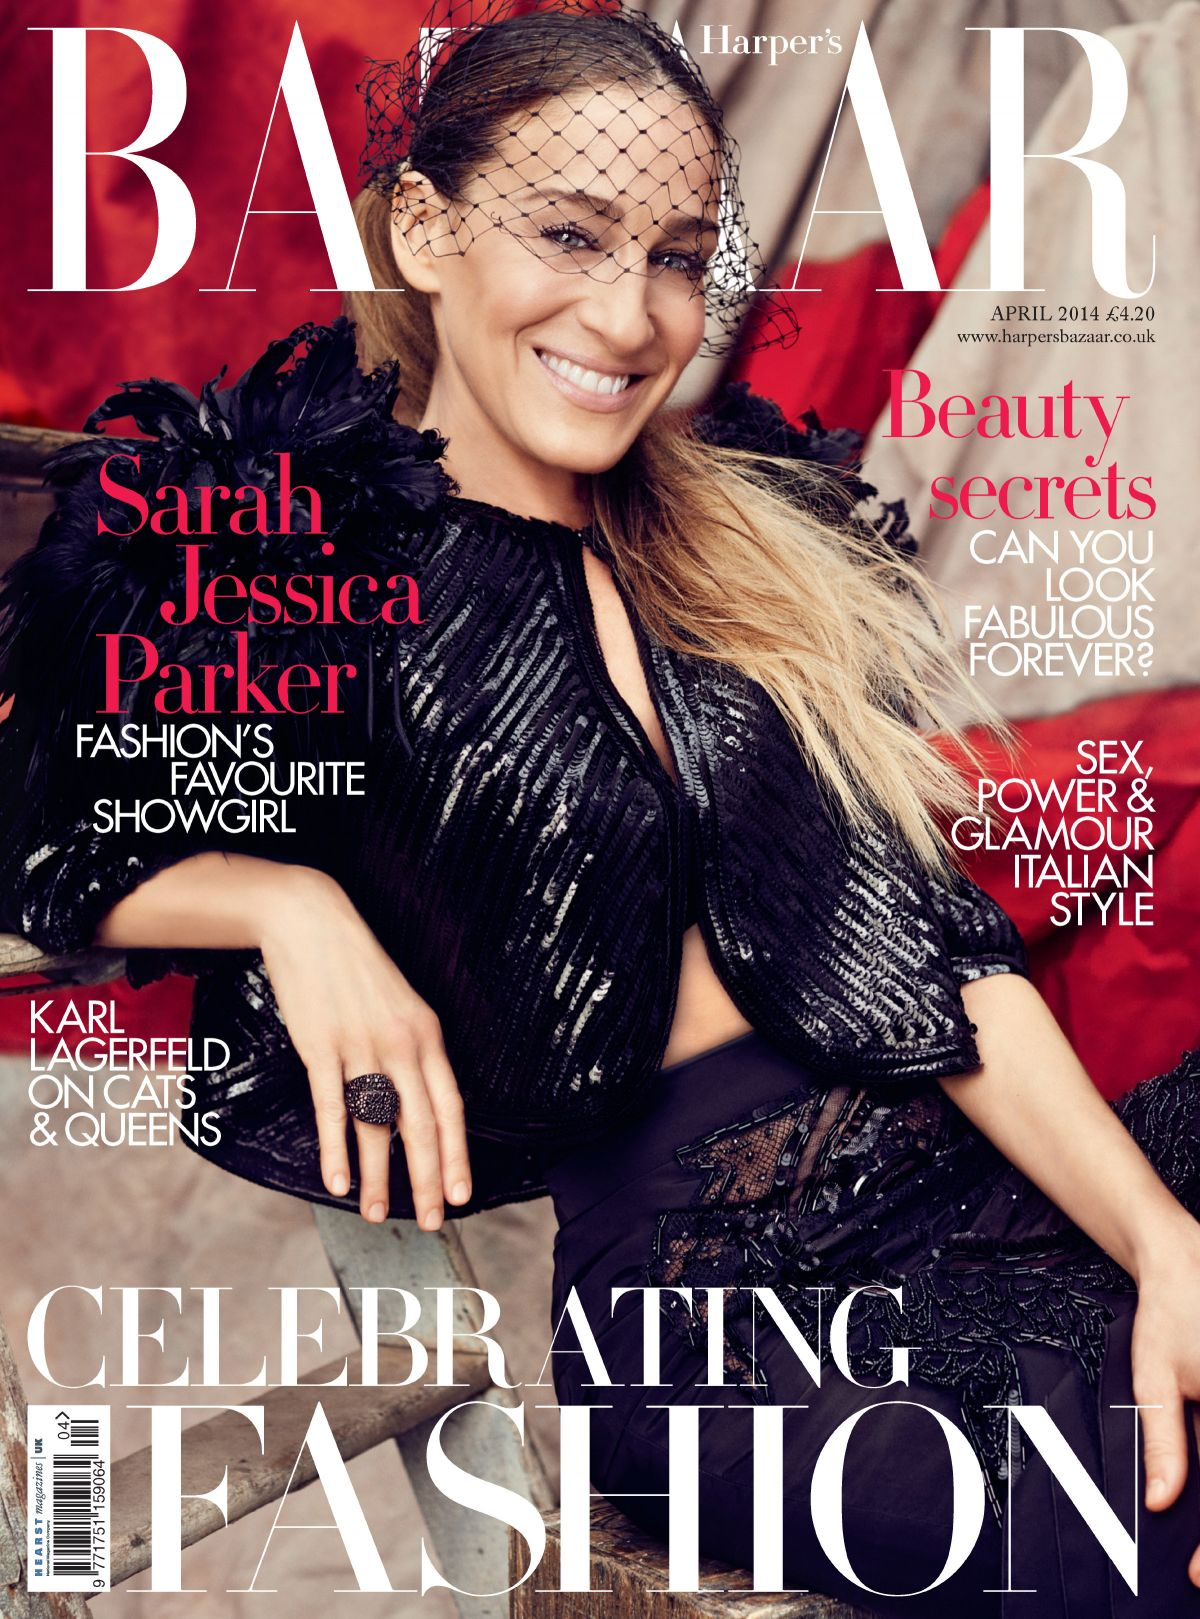 SARAH JESSICA PARKER on the Cover of Harper